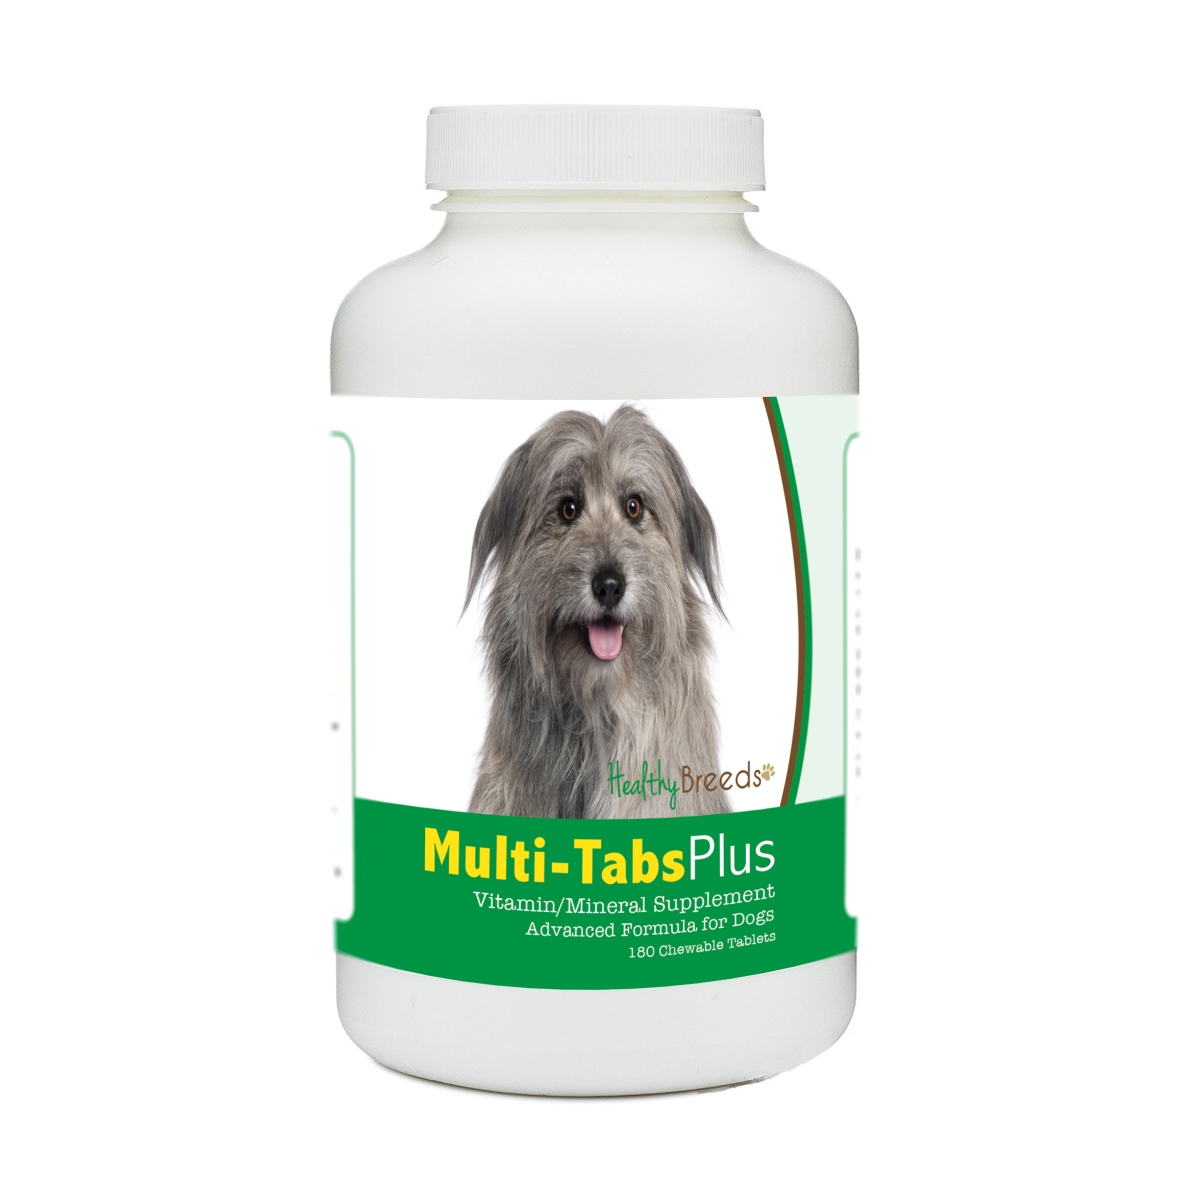 Healthy Breeds 840235171515 Pyrenean Shepherd Multi-Tabs Plus Chewable Tablets - 180 Count